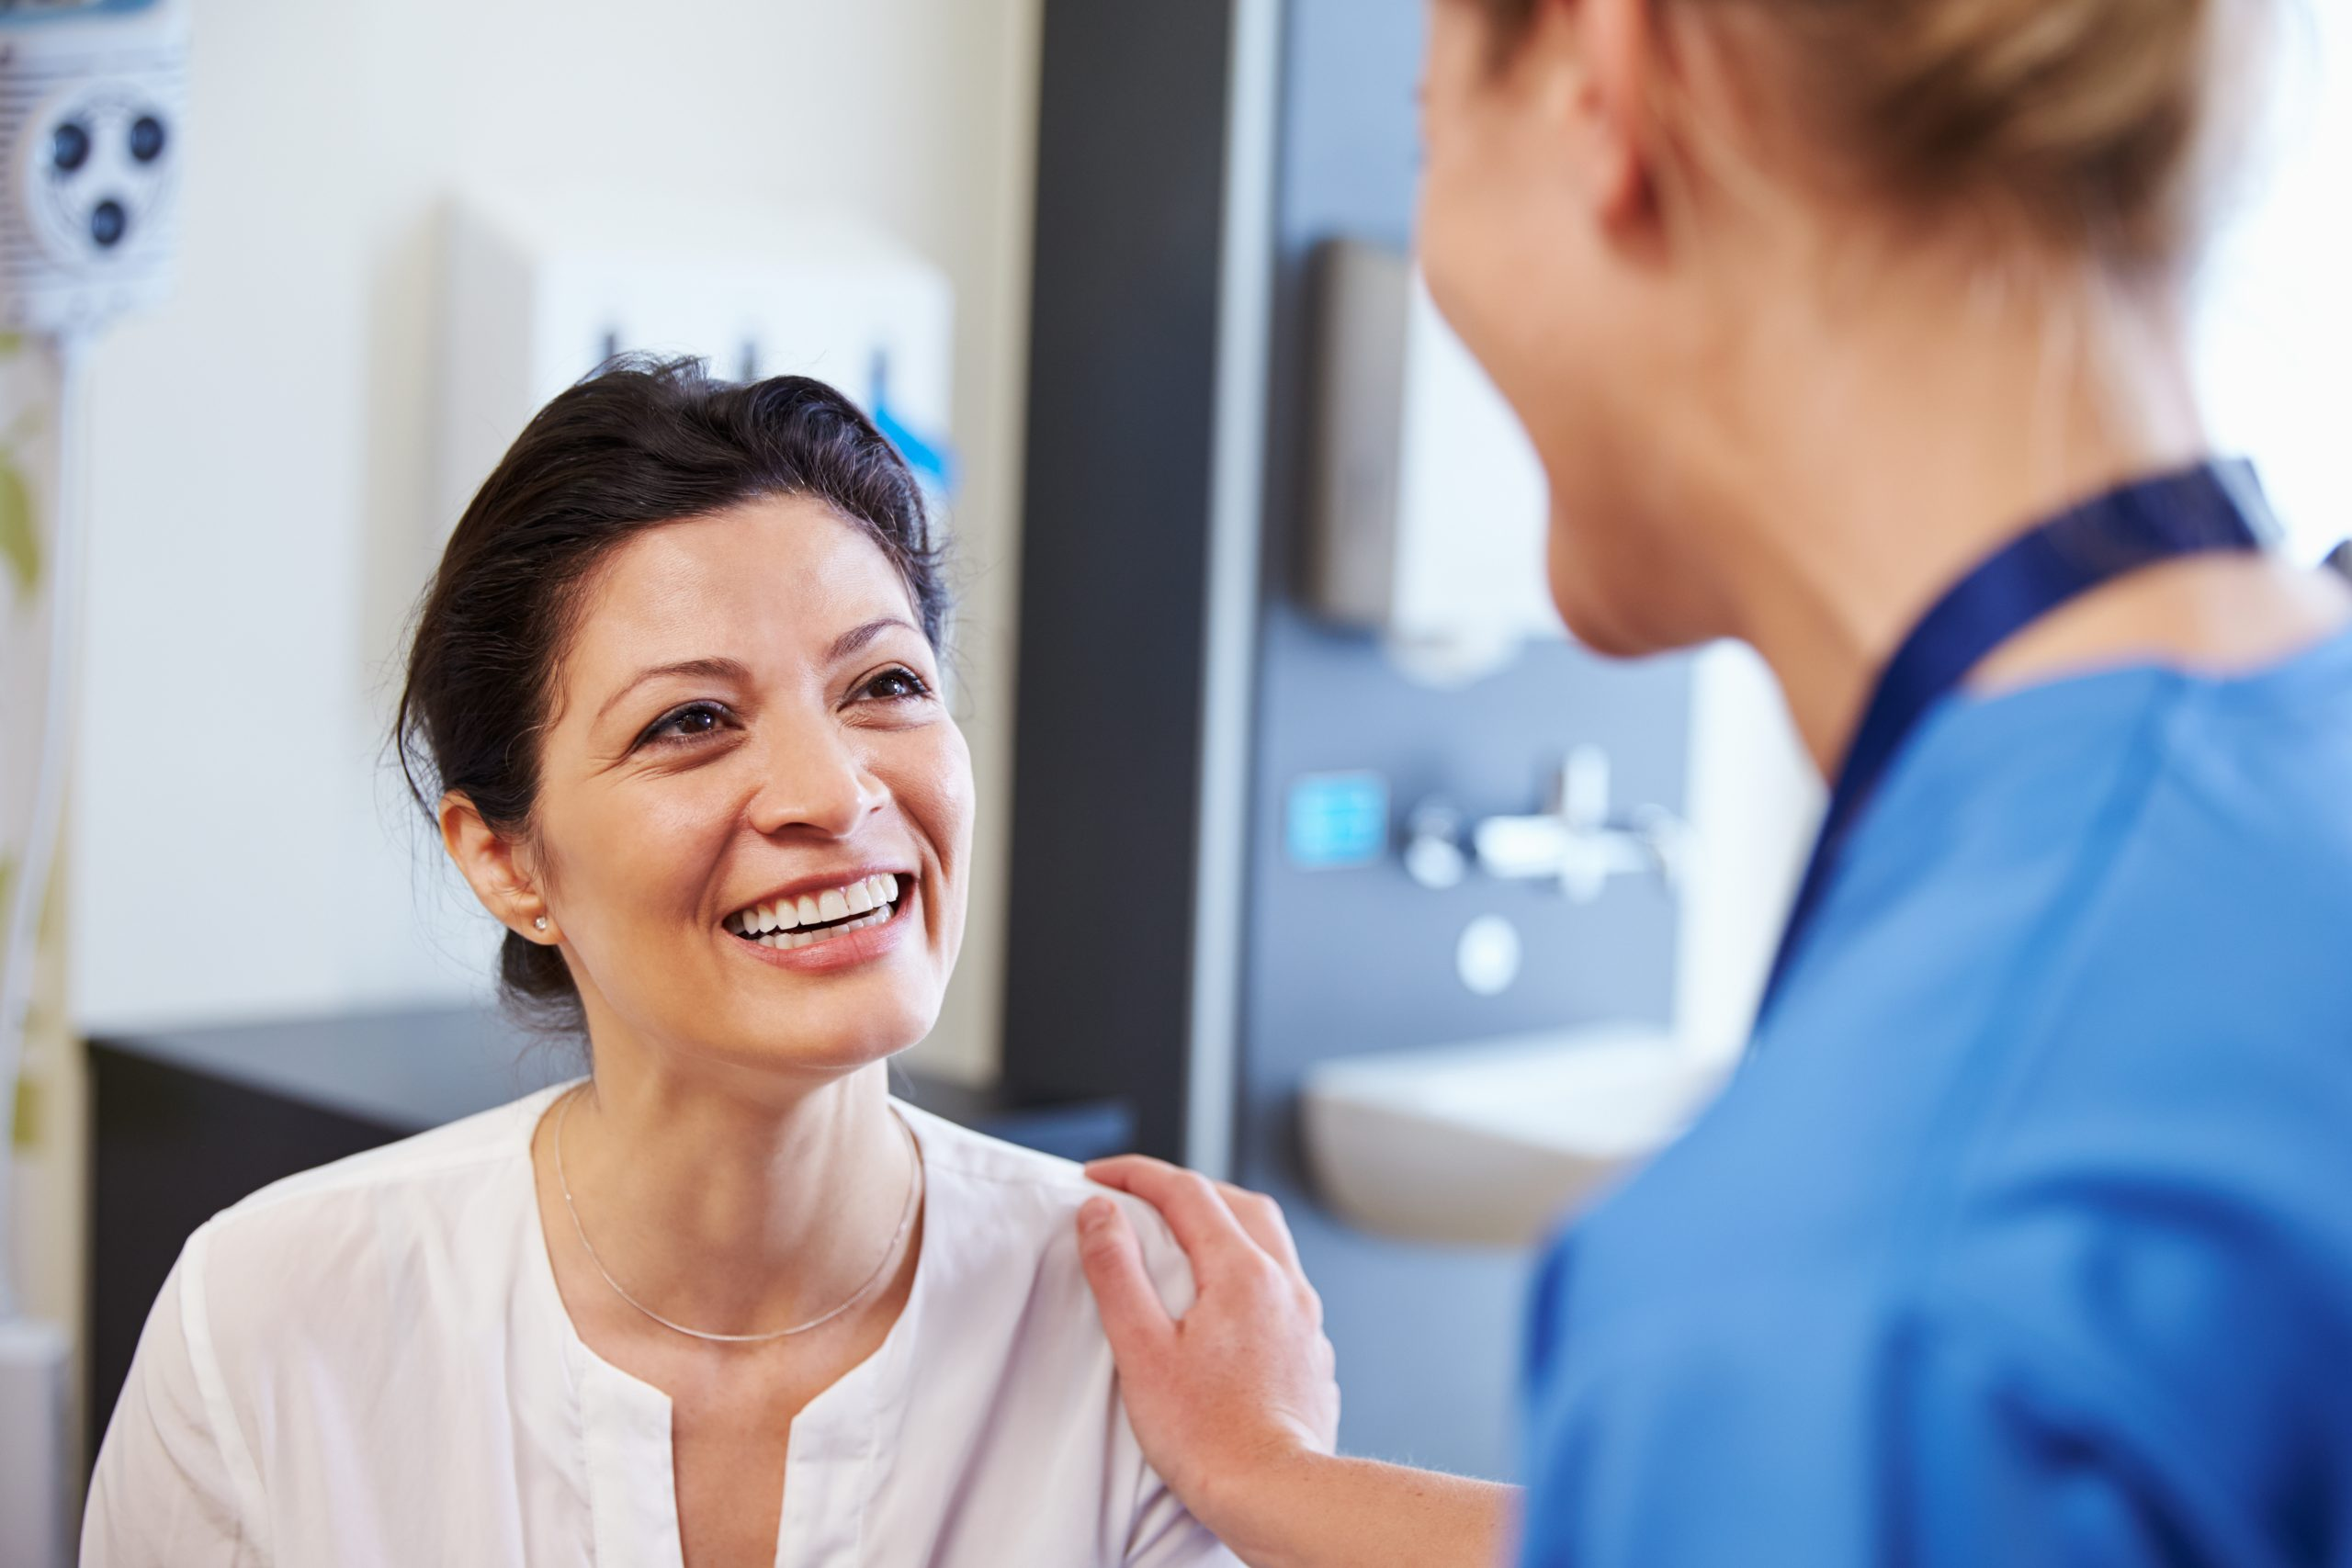 Female Patient Being Reassured By Doctor during immigration physicals